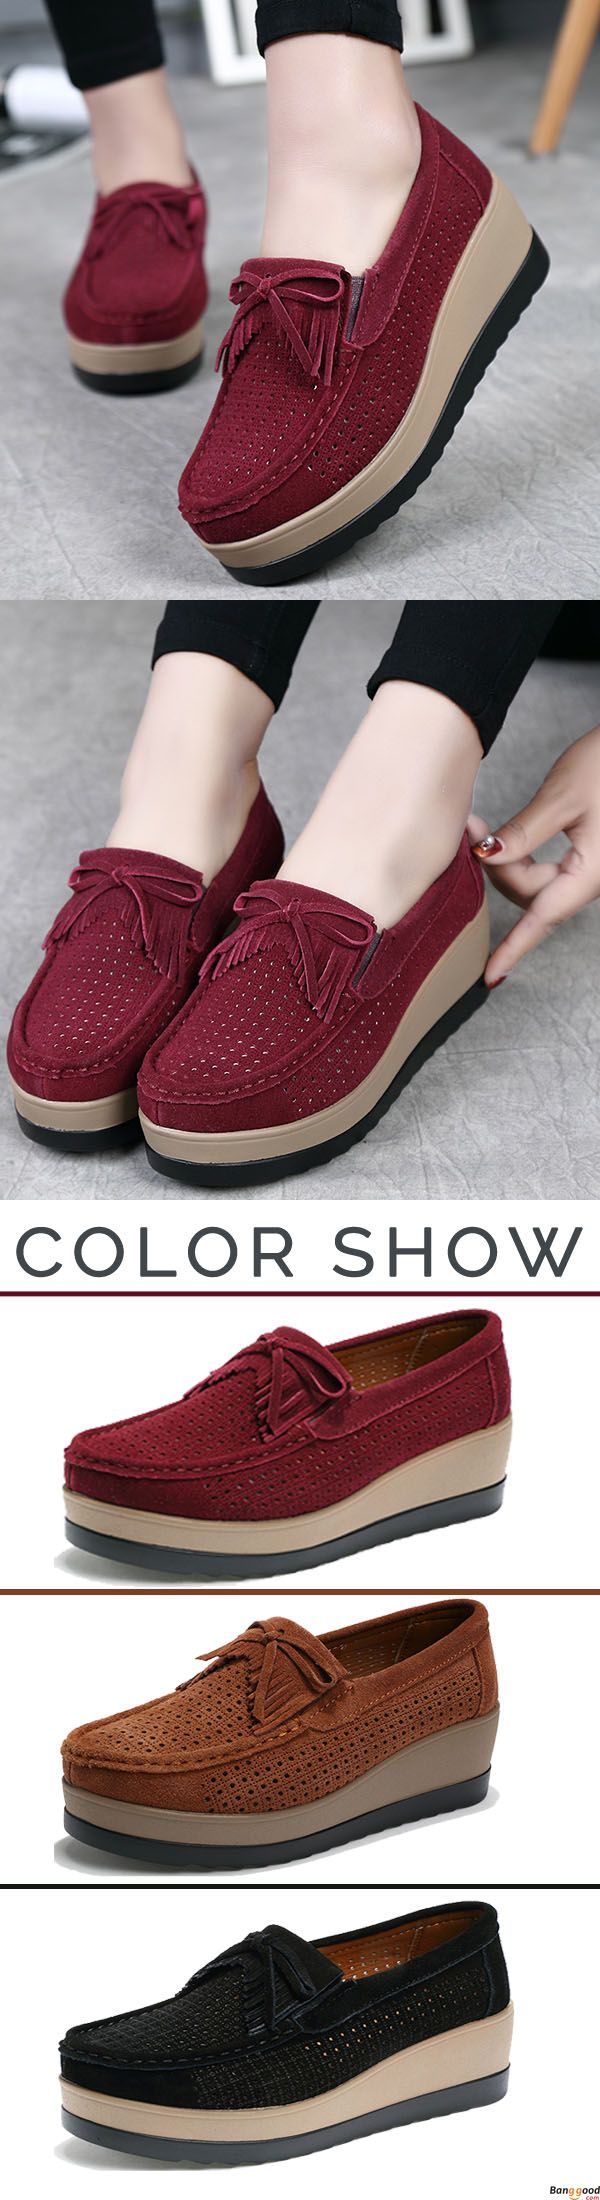 US$37.86 + Free shipping. Hollow Out High Heel Casual Comfy Platforms Women Shoes. Comfy and chic. You may need one pair for daily wear. Shop at banggood now.